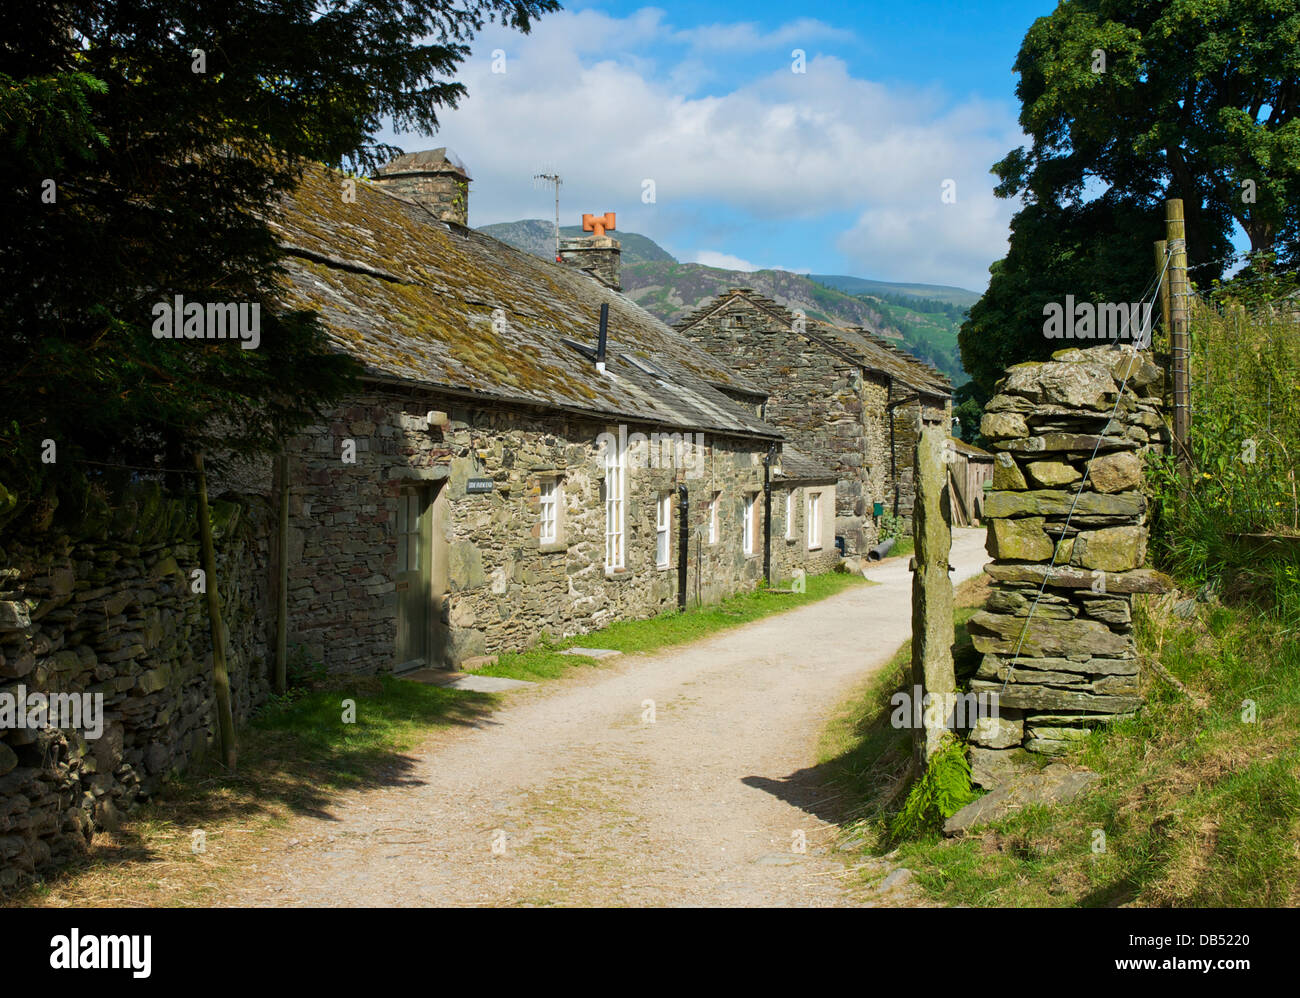 Track through Side Farm, near Patterdale, Lake District National Park, Cumbria, England UK - Stock Image